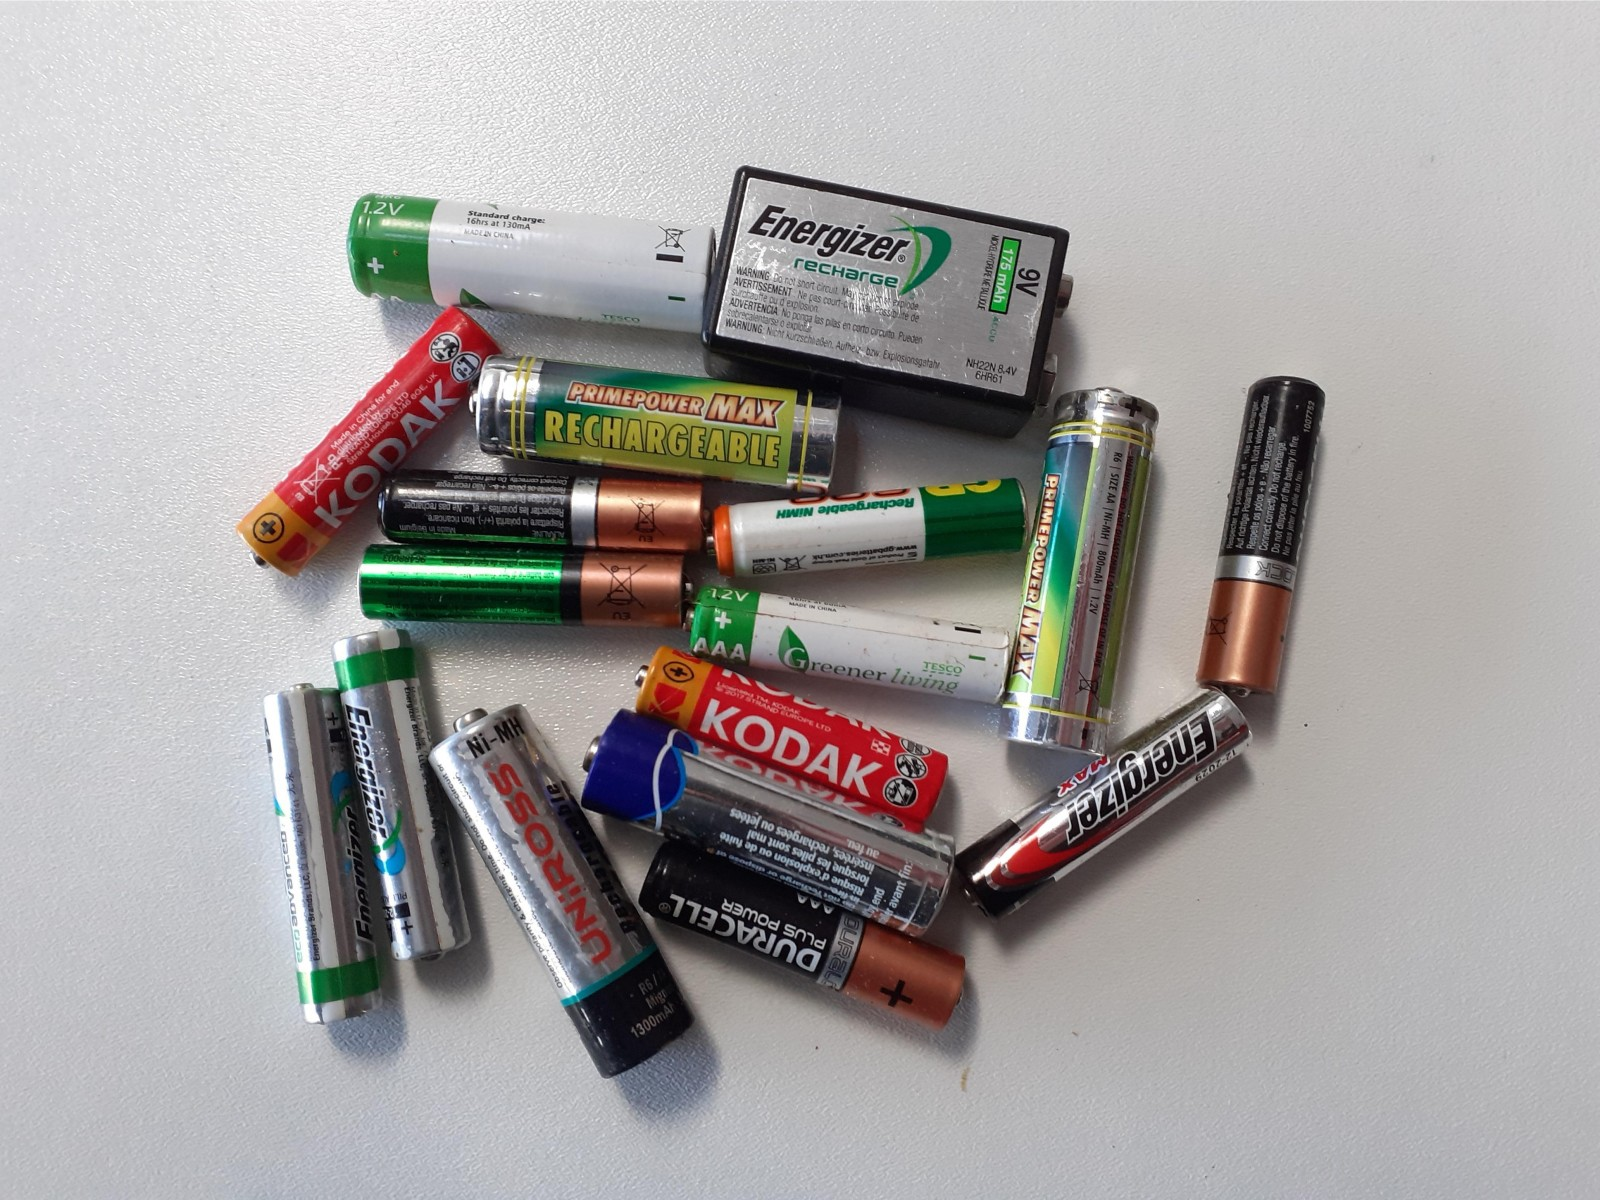 Batteries should be disposed of safely